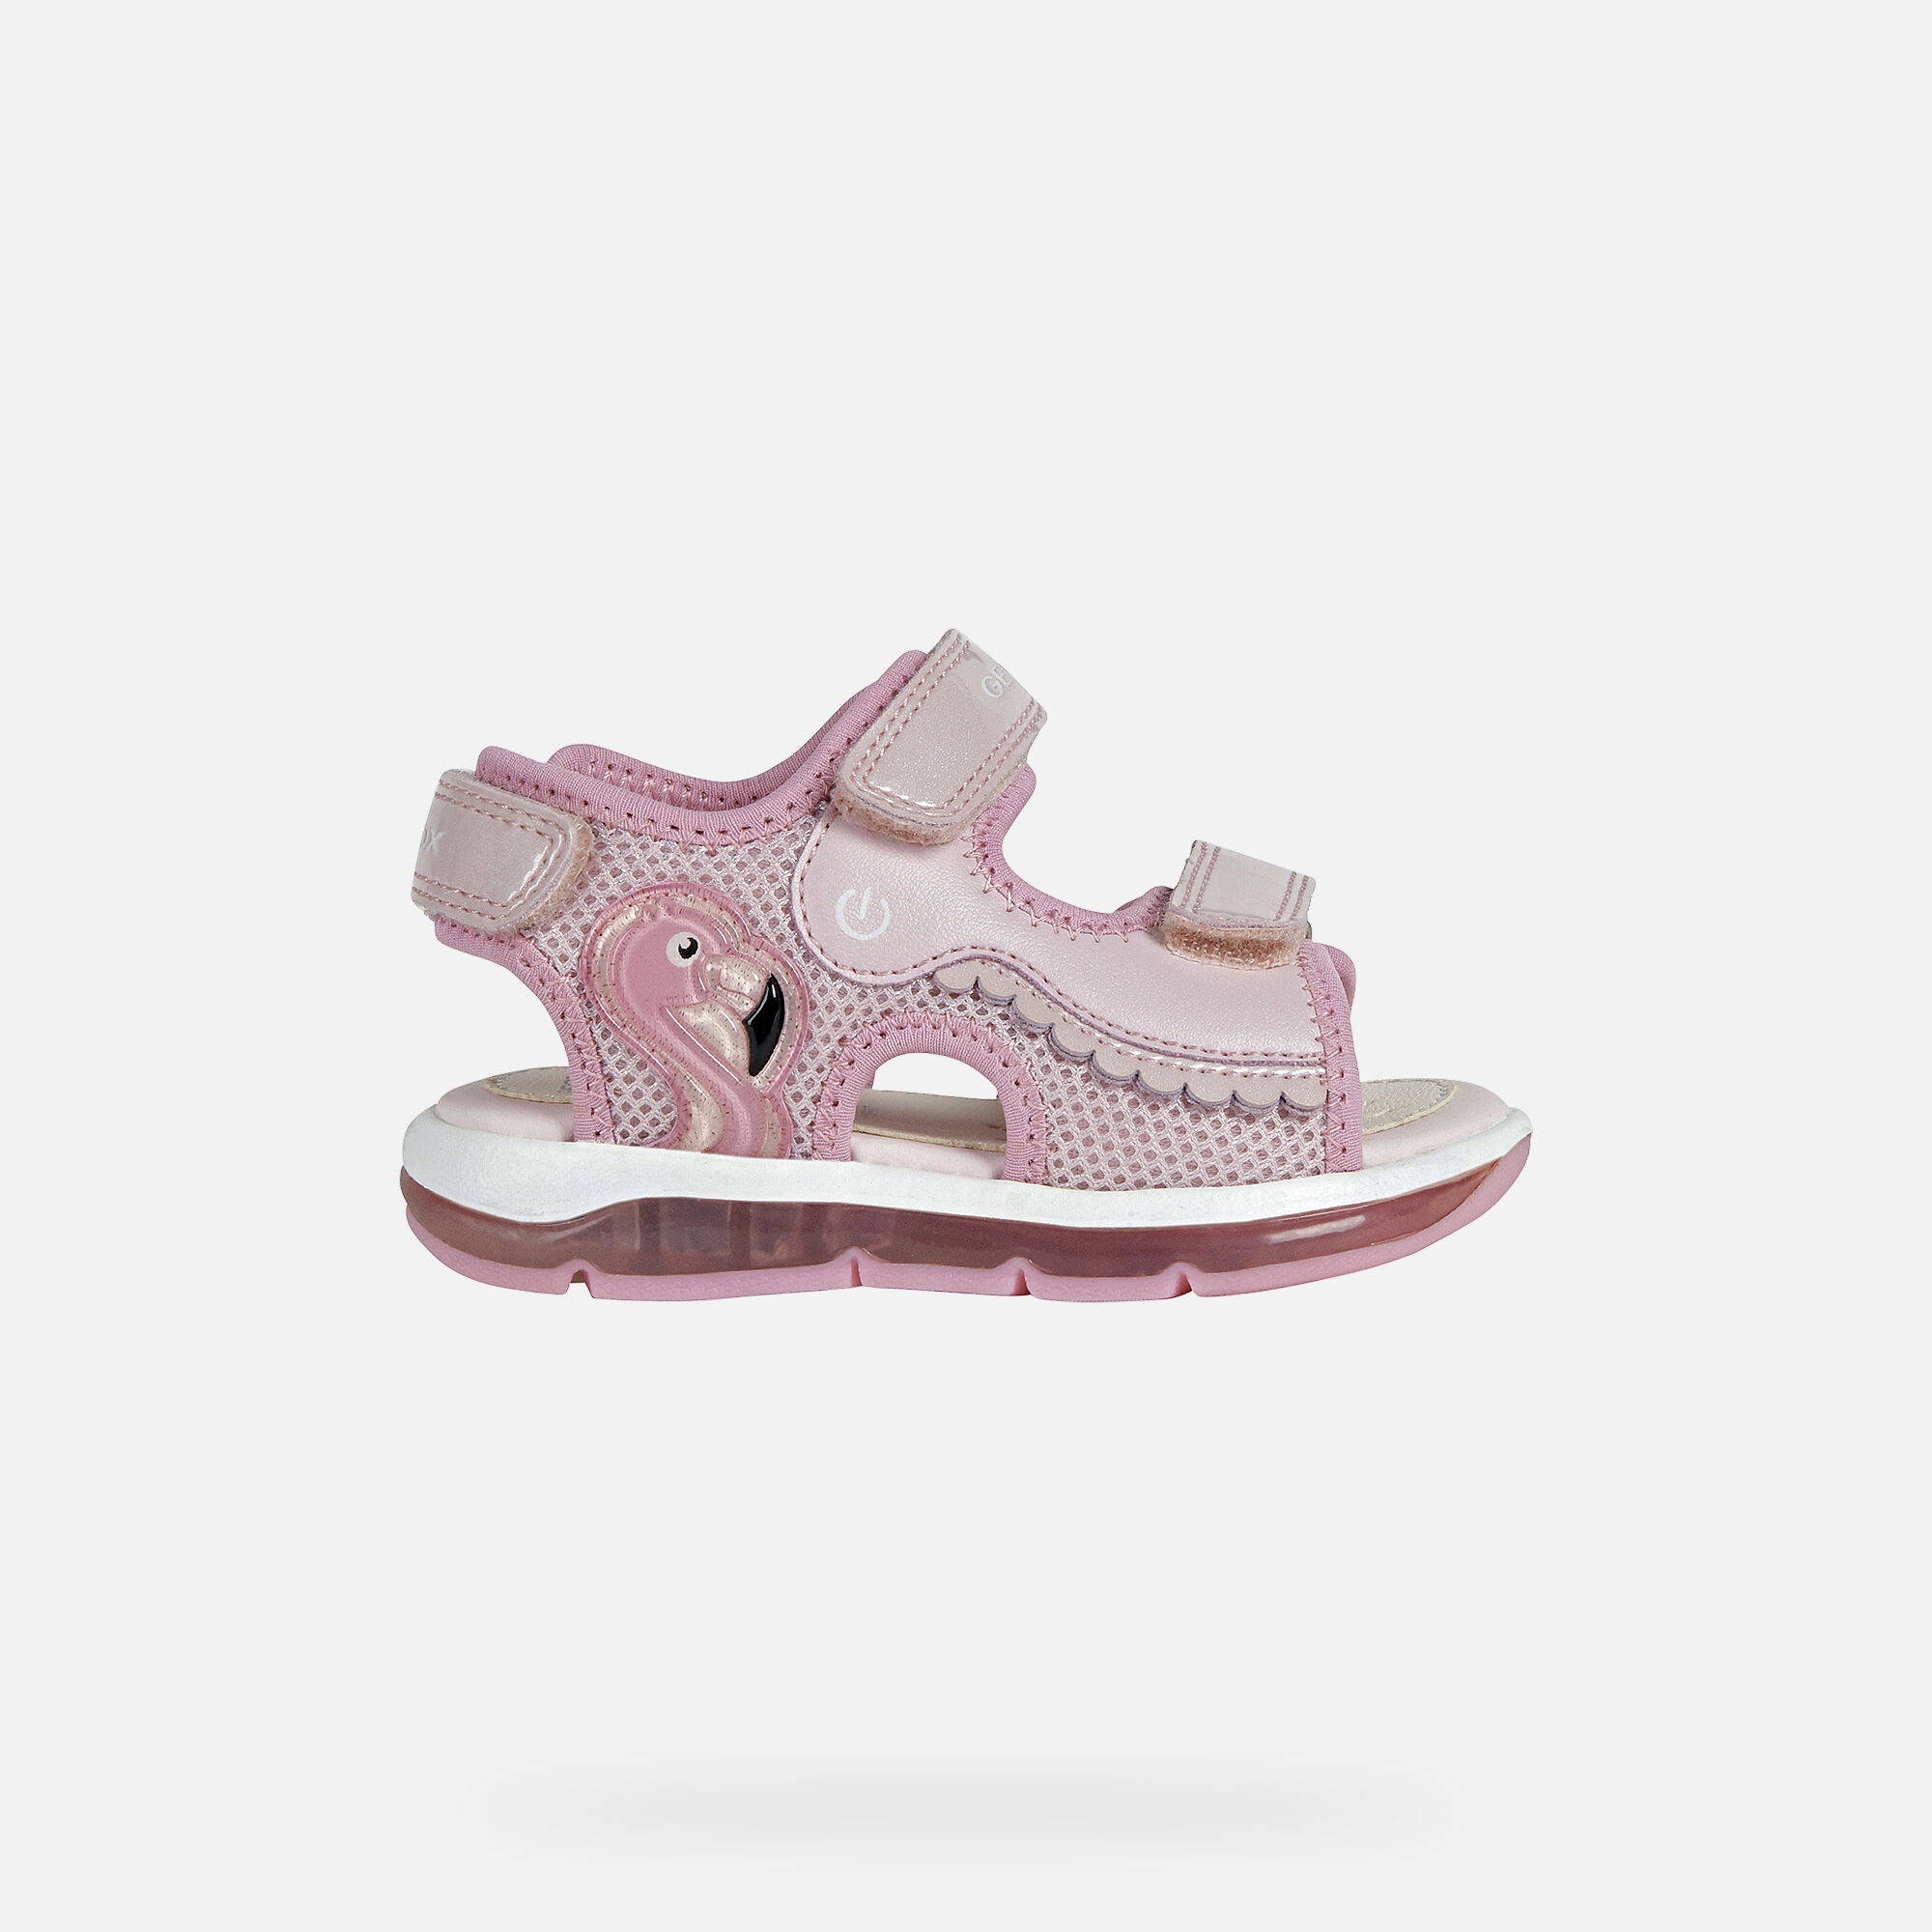 Geox TODO Baby Girl: Pink Sandals